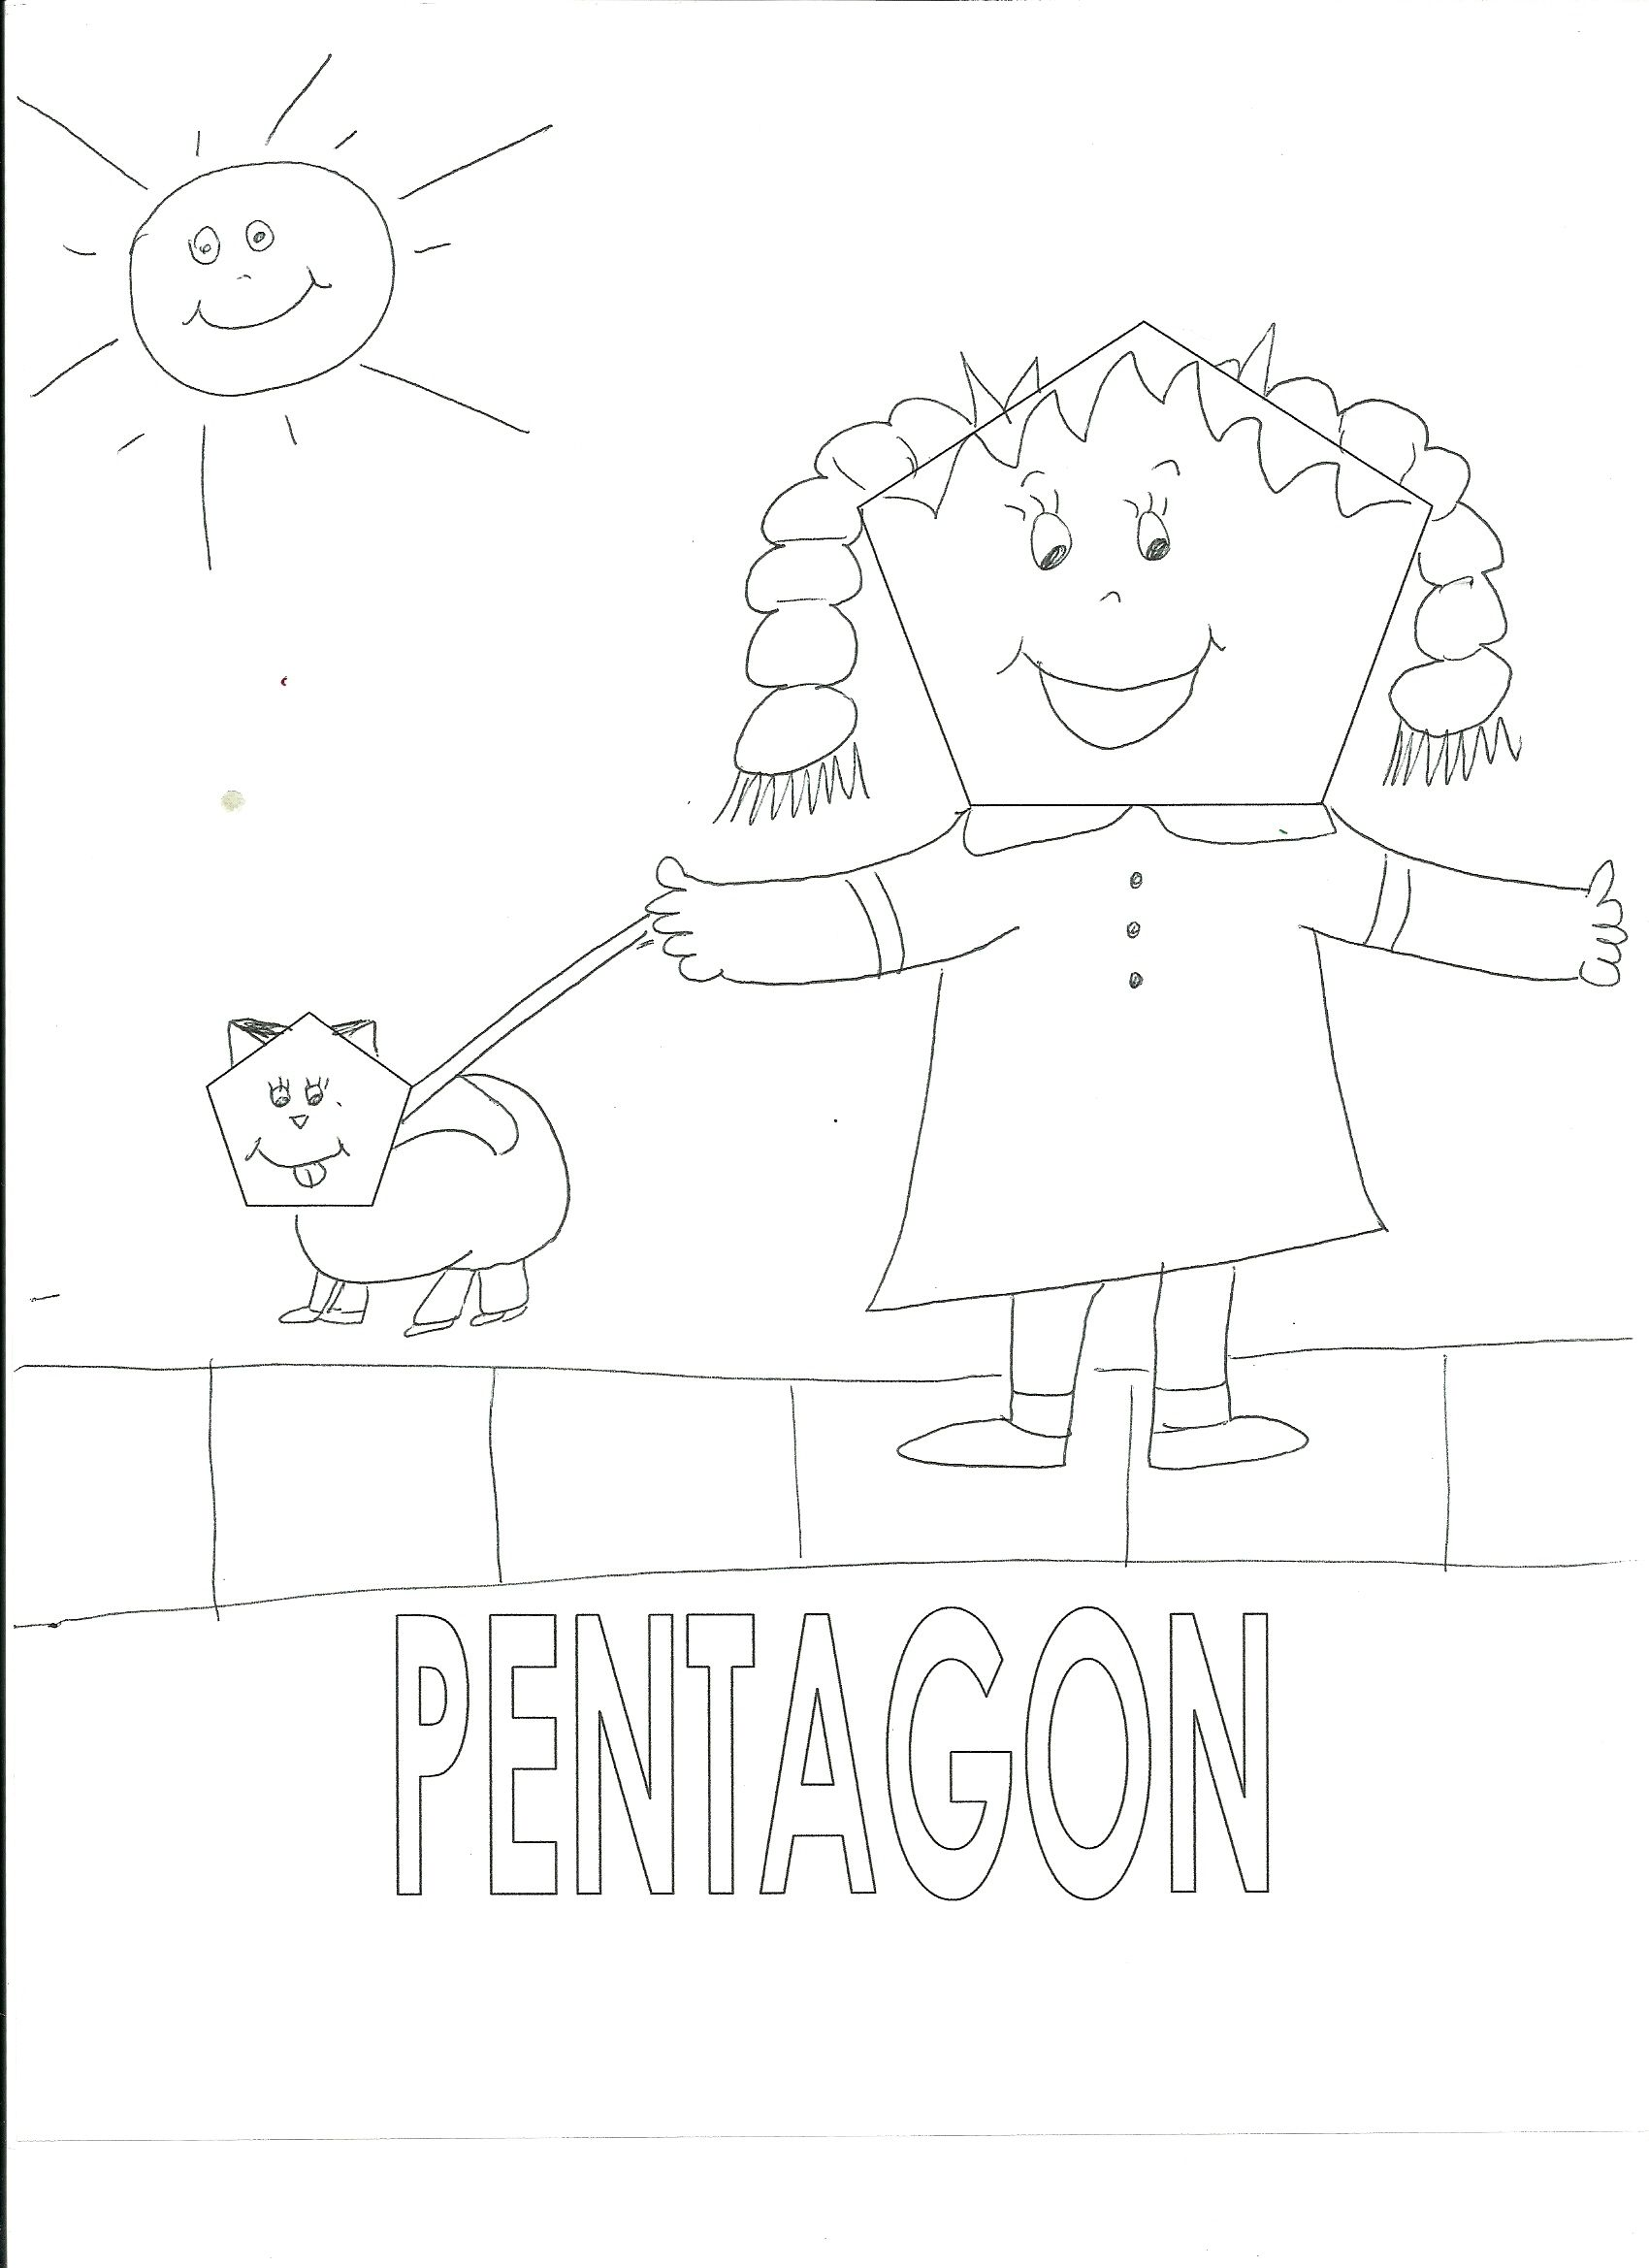 Pentagon coloring page homeschool math pinterest homeschool